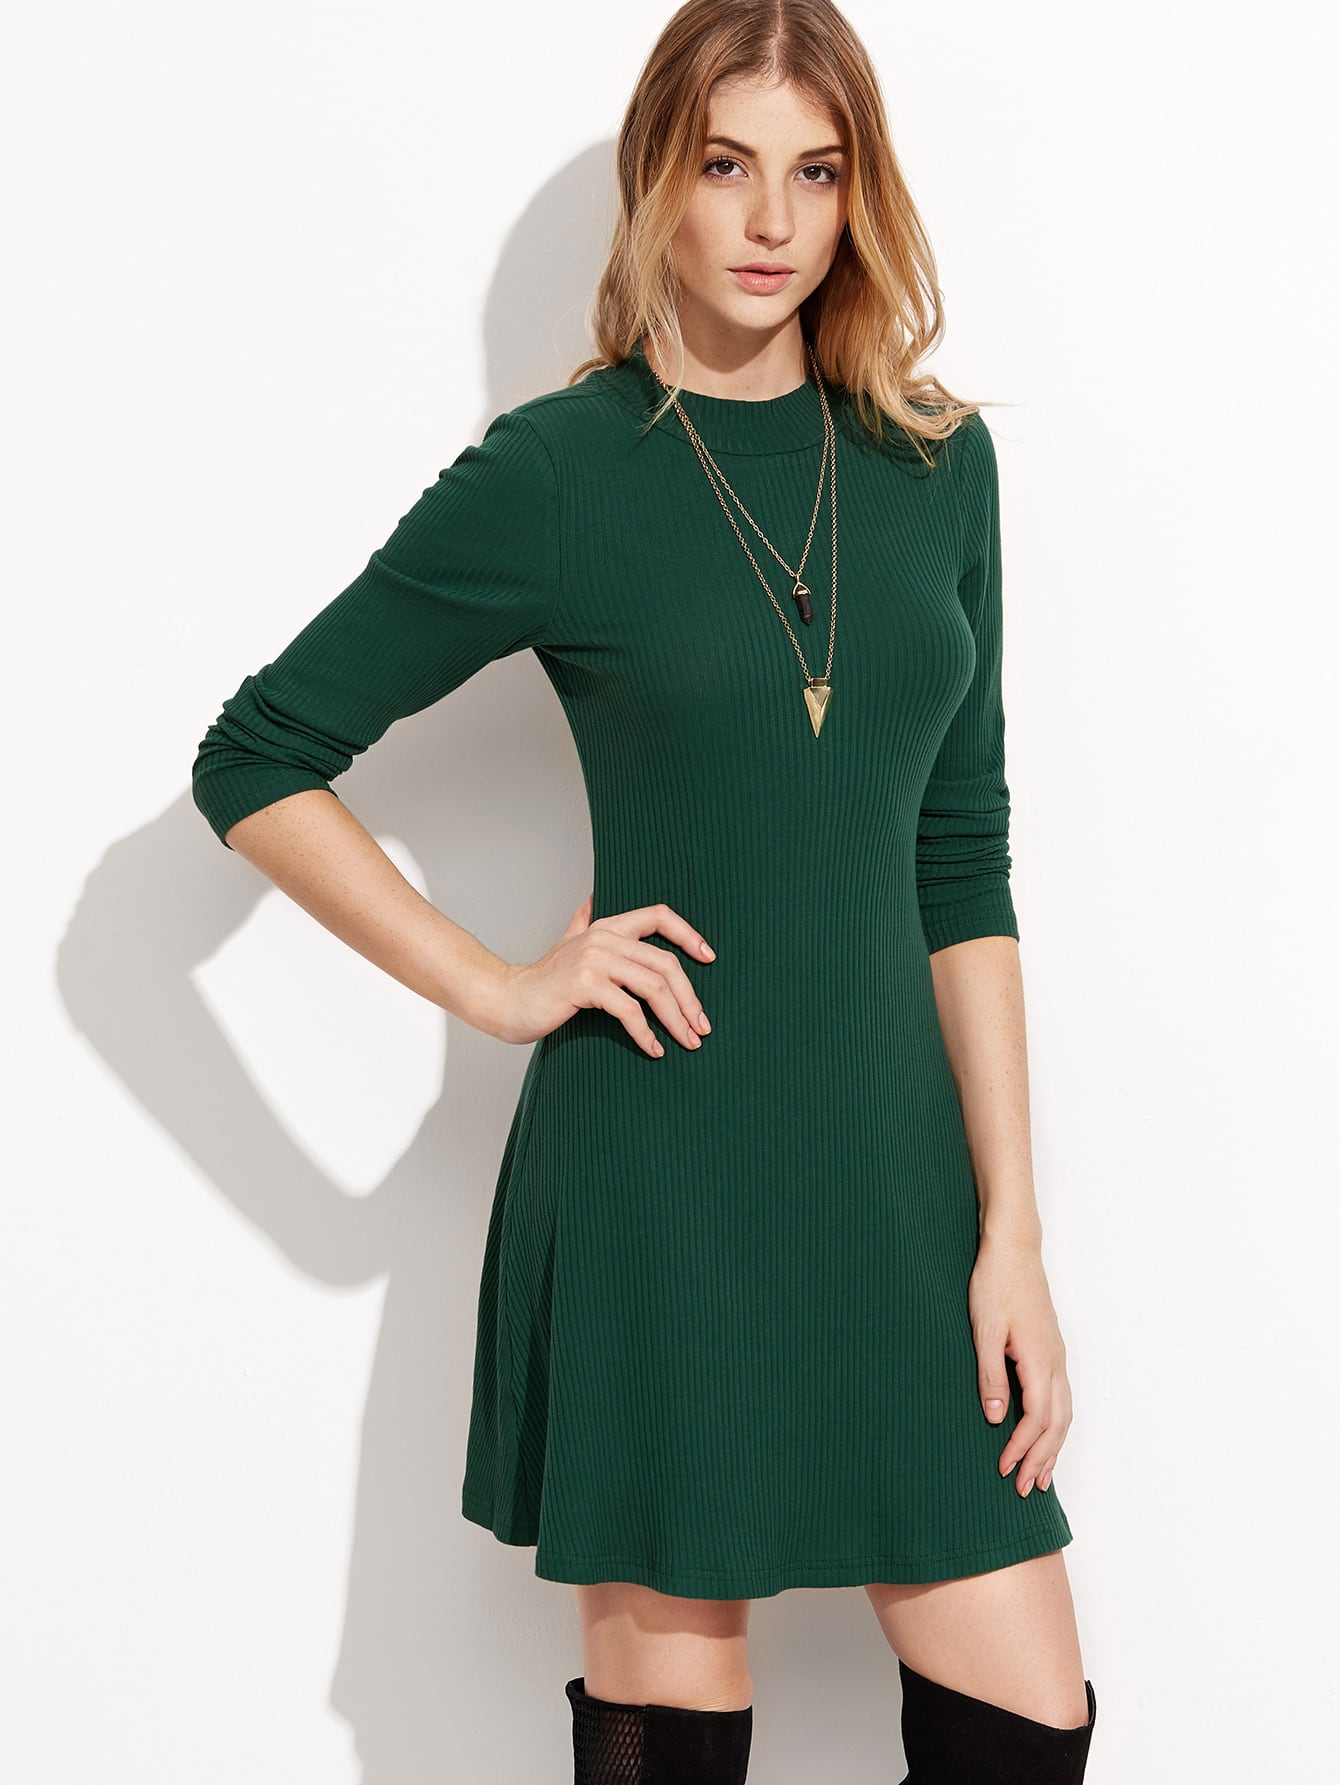 Green Long Sleeve Ribbed Skater Dress dress160830708